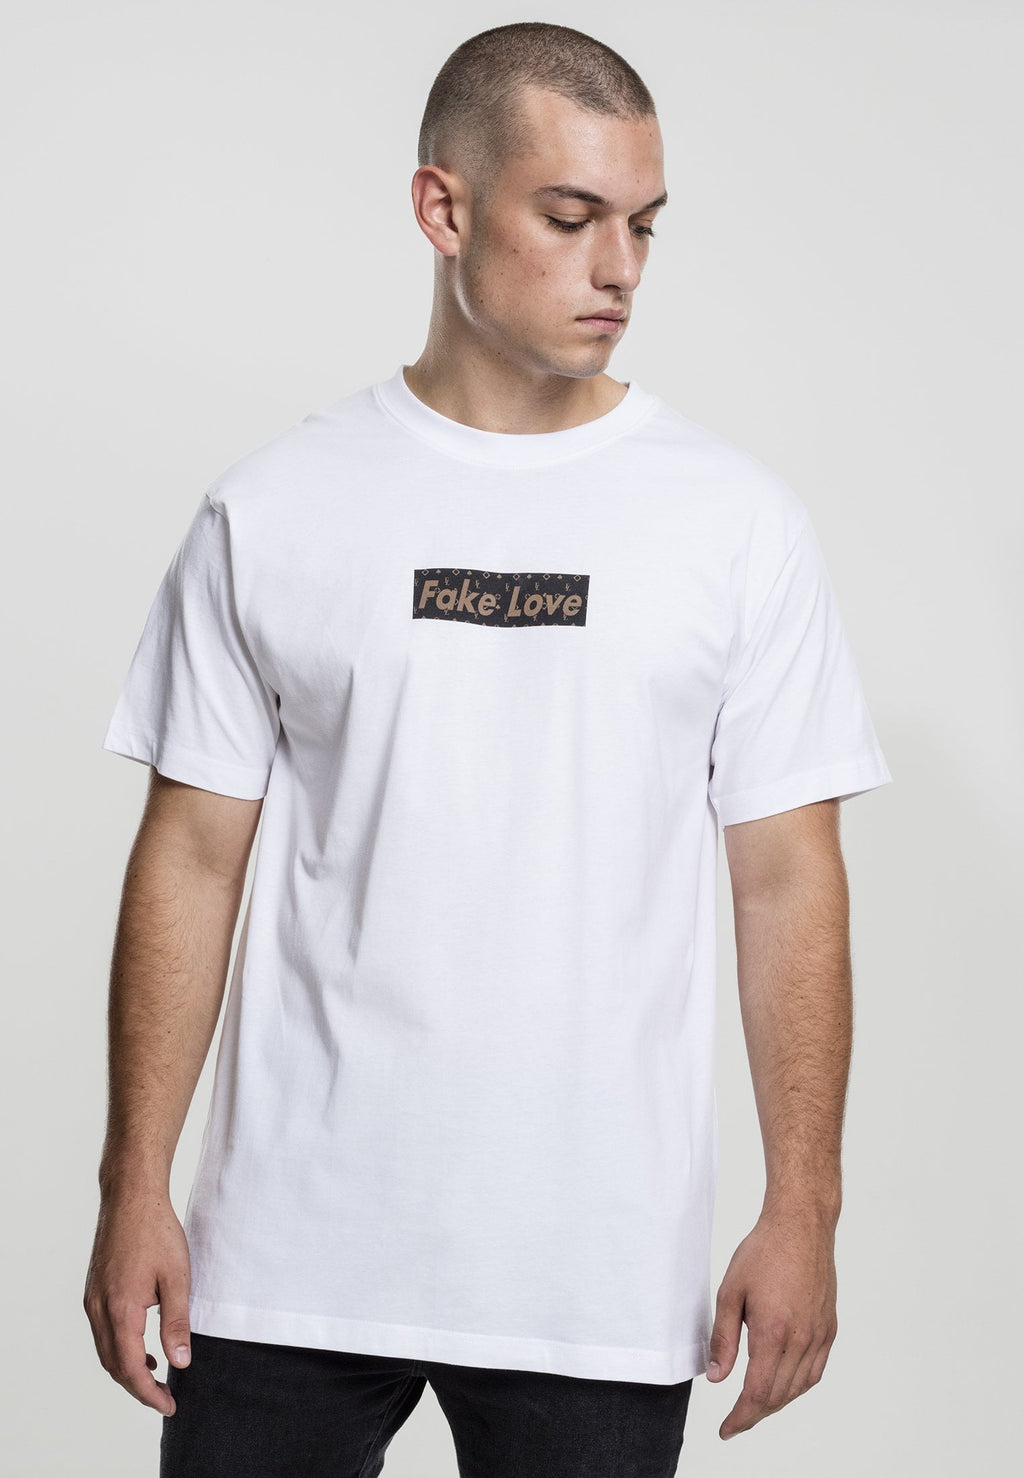 Fake Love Tee - White